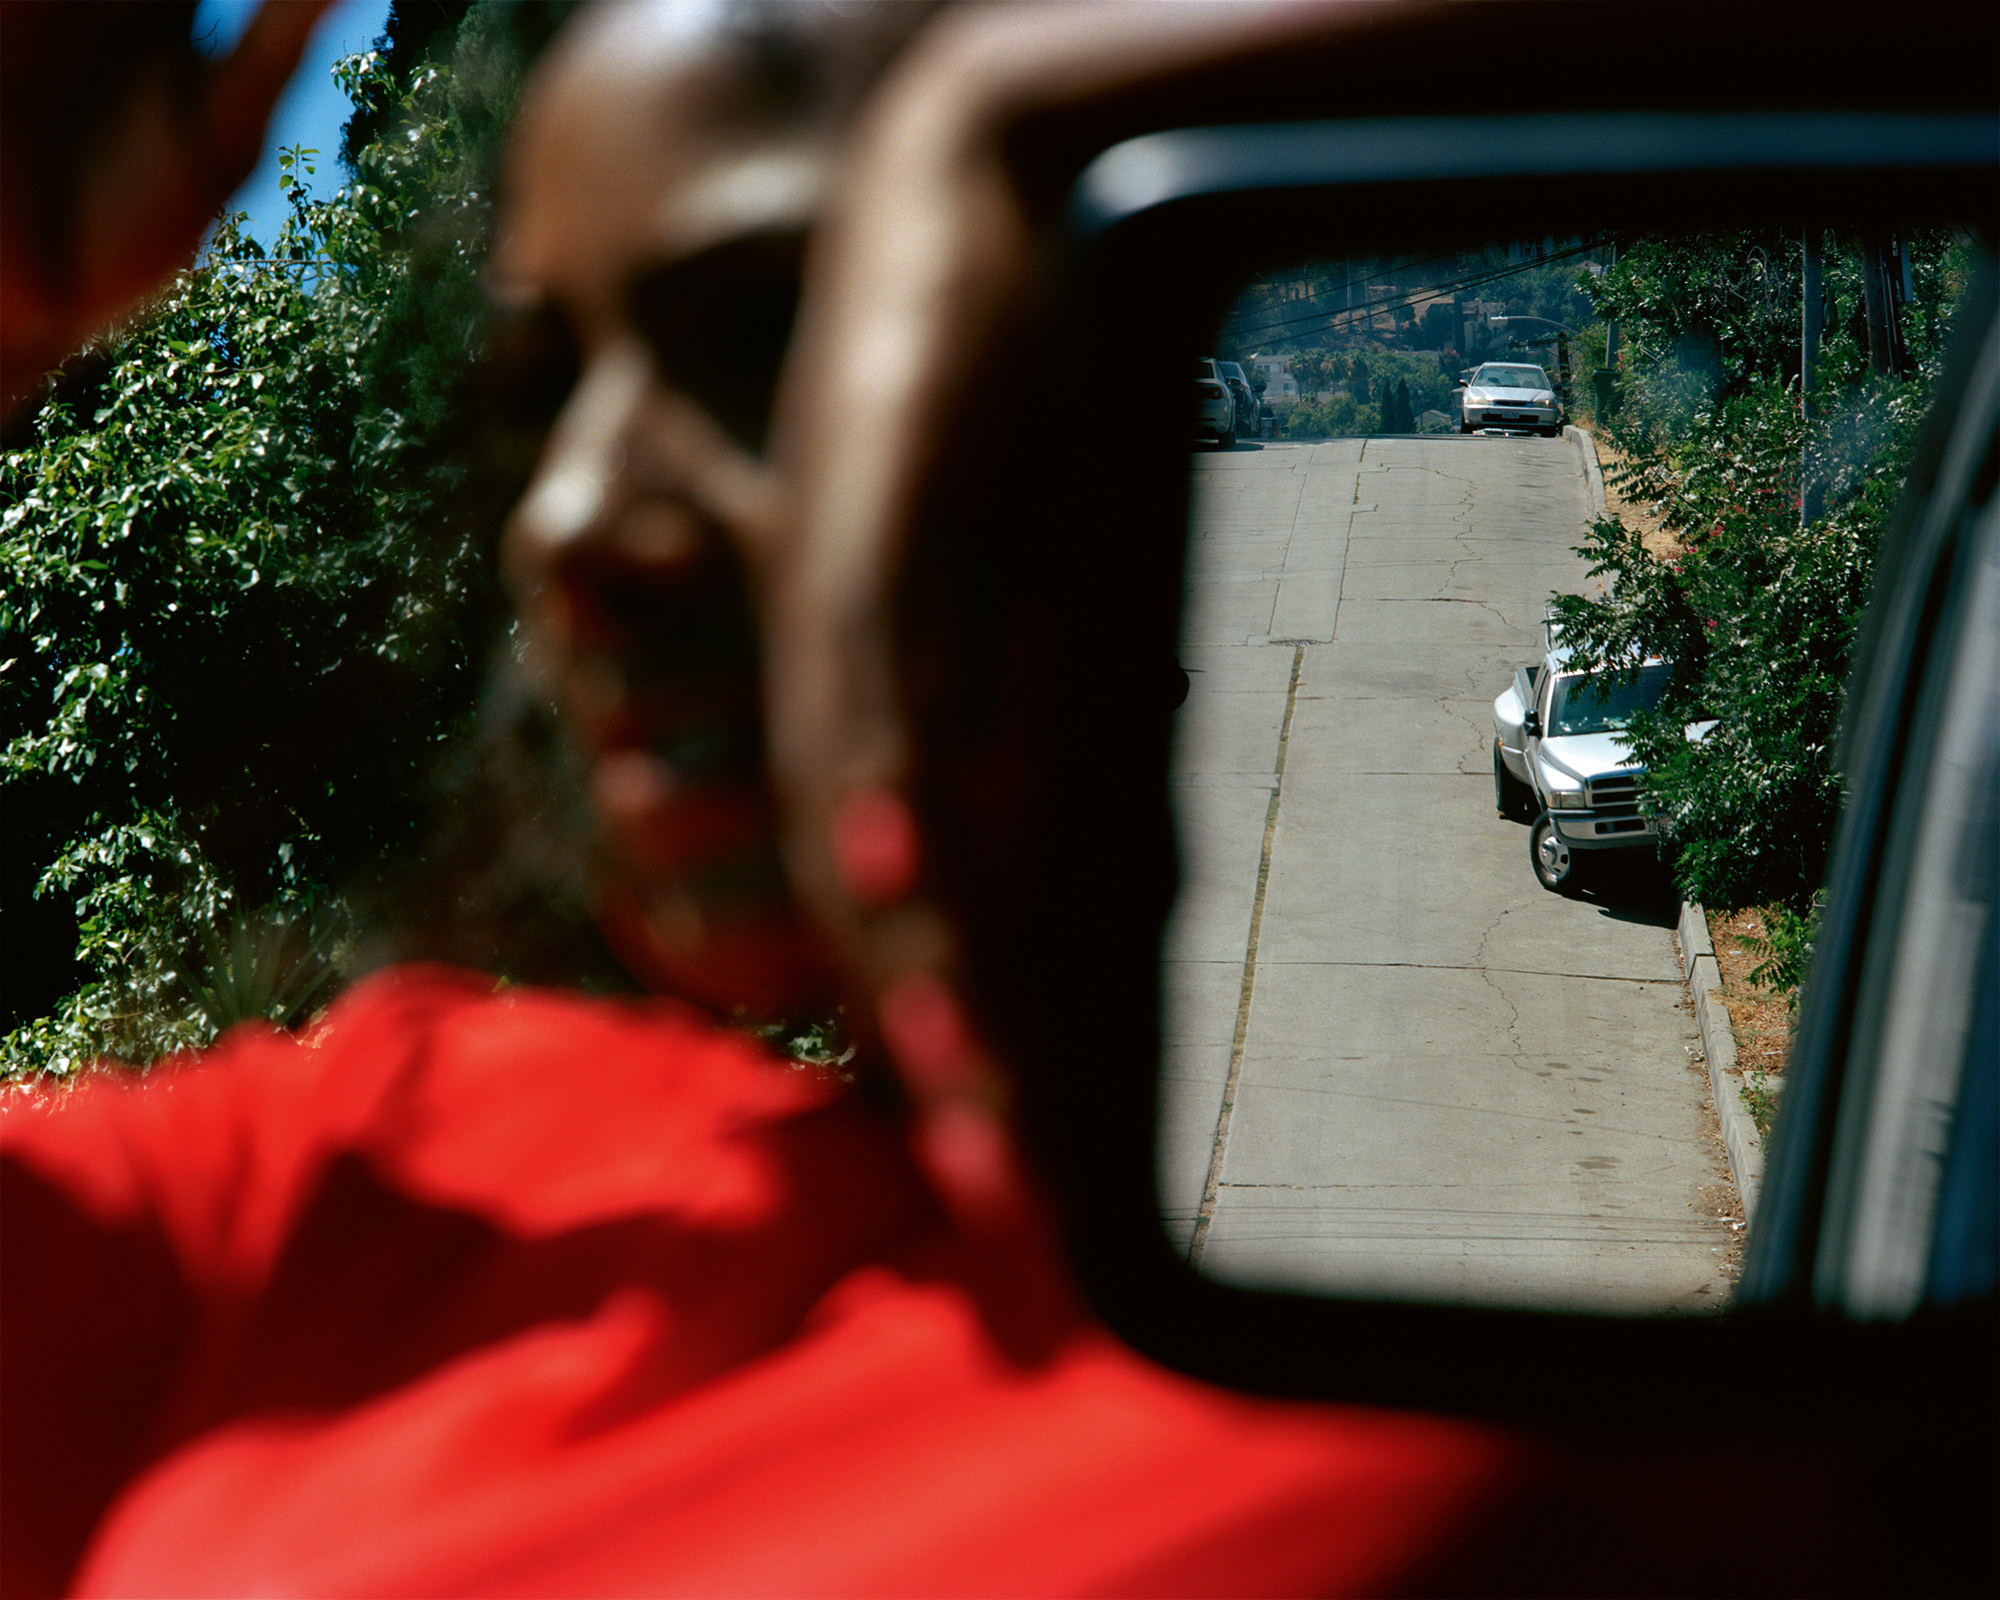 A photo where a woman is out of focus, but the road in the rearview mirror is in focus